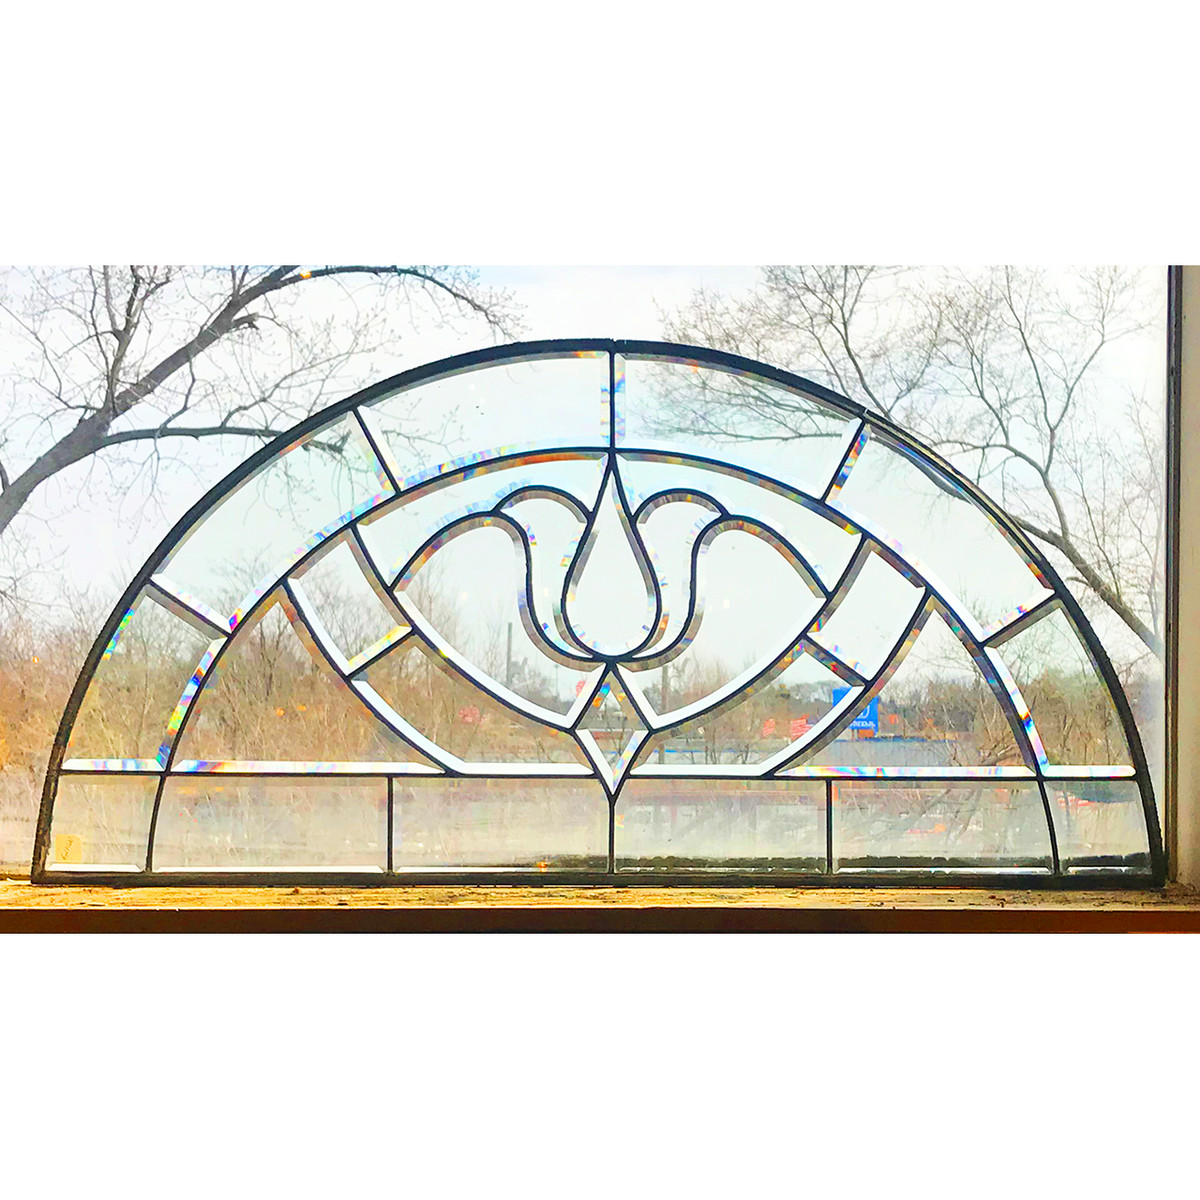 G21020 - Arts & Crafts Beveled Tulip Window